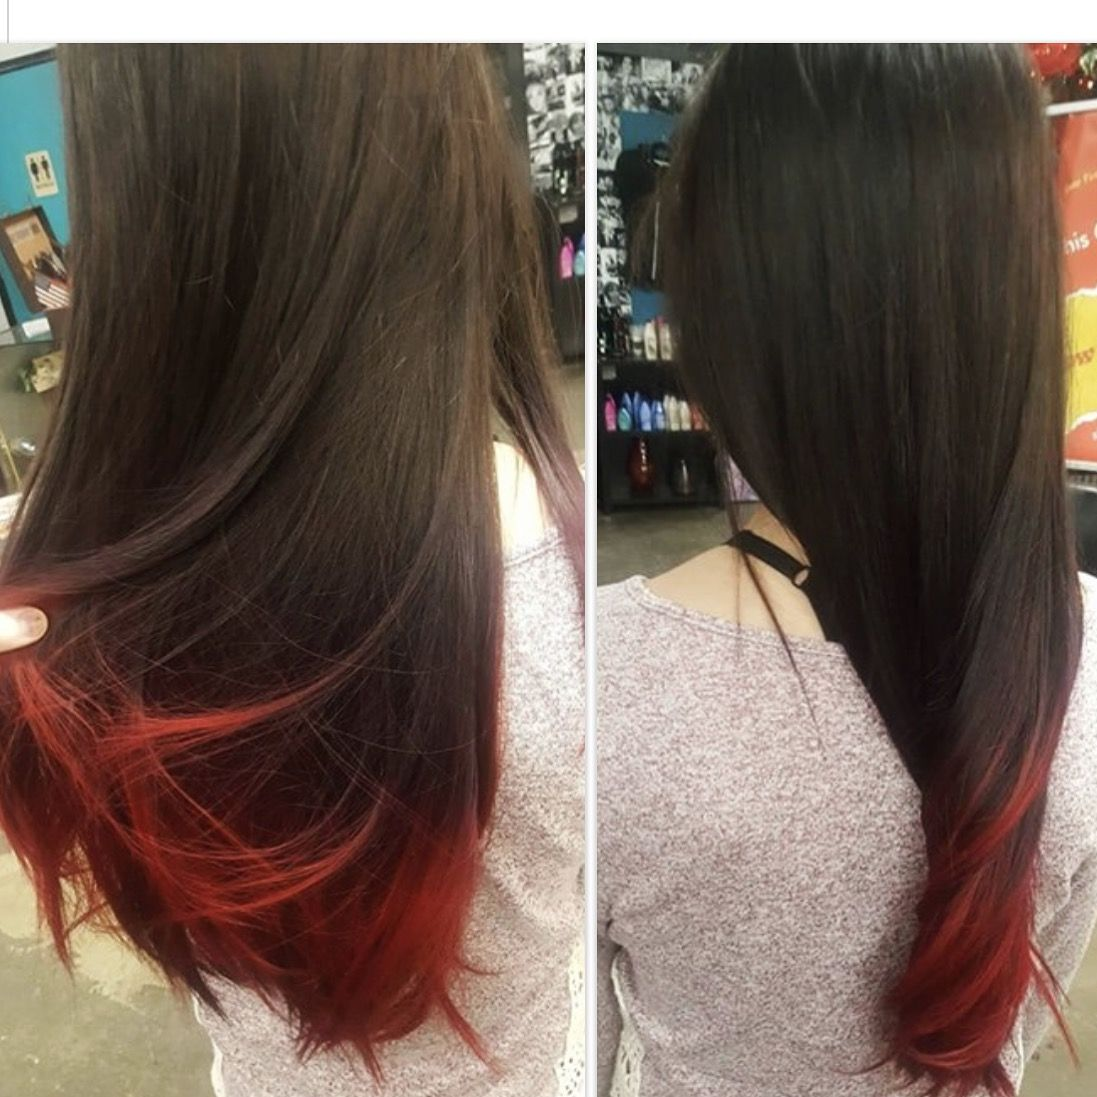 Fire Red Tips On Pretty Brown Hair Red Hair Tips Brown Hair Red Tips Colored Hair Tips